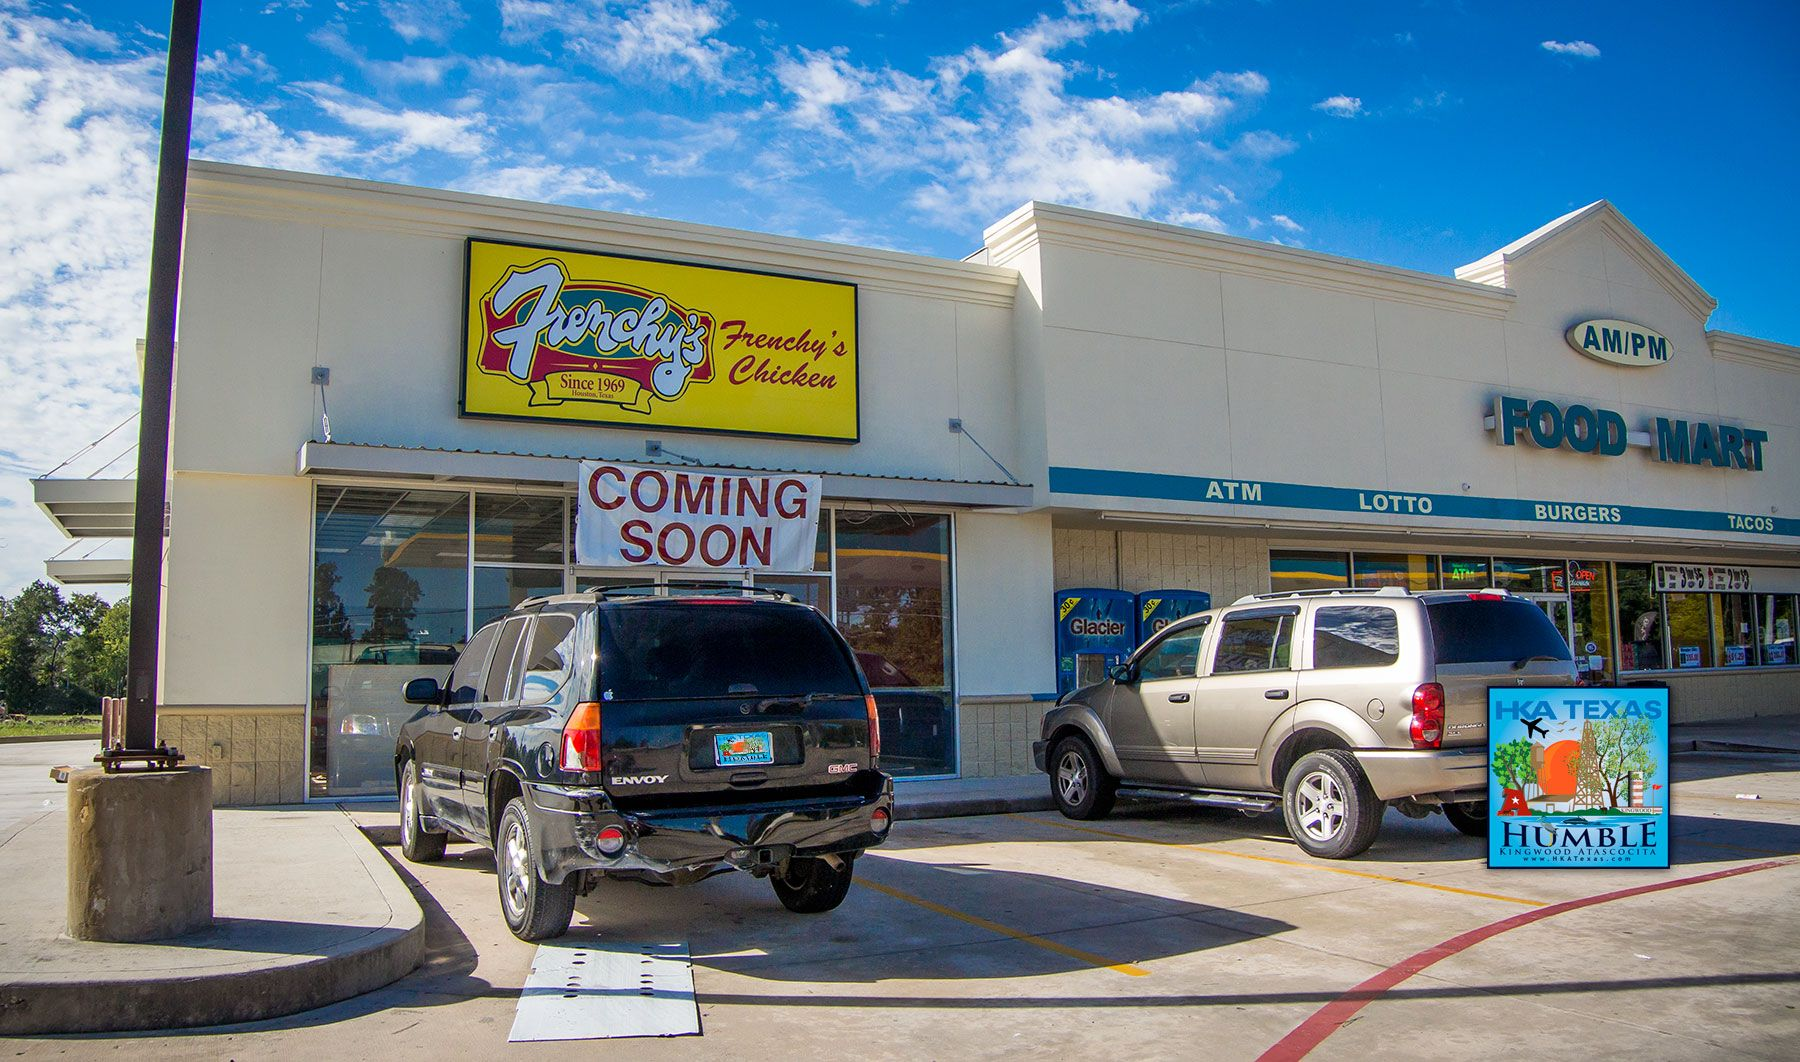 Frenchy's Chicken to open in Humble, TX later this month